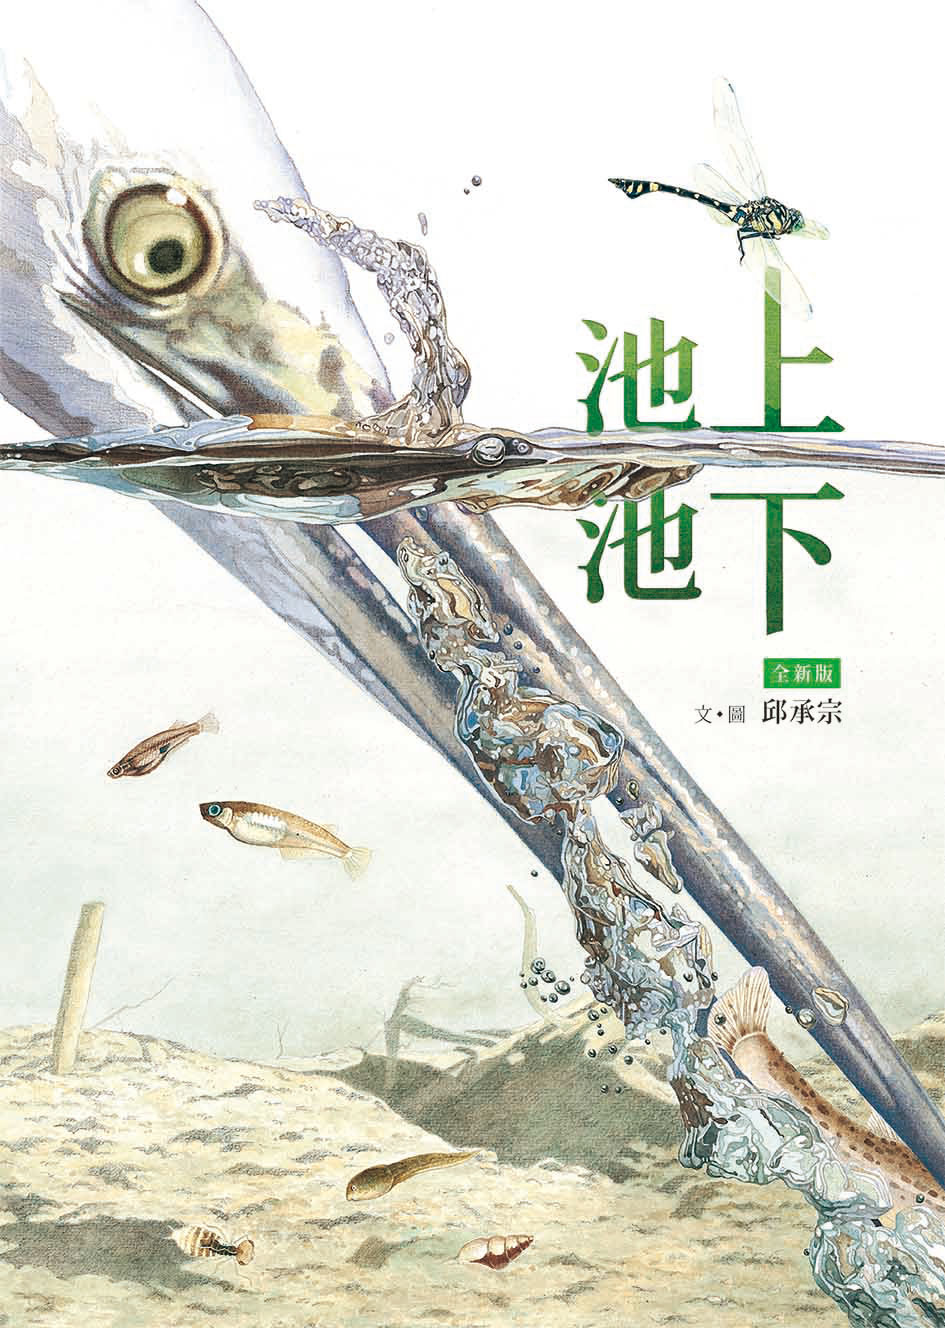 Hsiao Lu Publishing Co. Ltd.|小魯文化事業股份有限公司   50pages|21.5×29.6cm|978-986-211-481-0   CONTACT INFO:   Yulan Chen Chief Editor| yulan@tienwei.com.tw   Tel:+886-2-2732-0708 ext.22